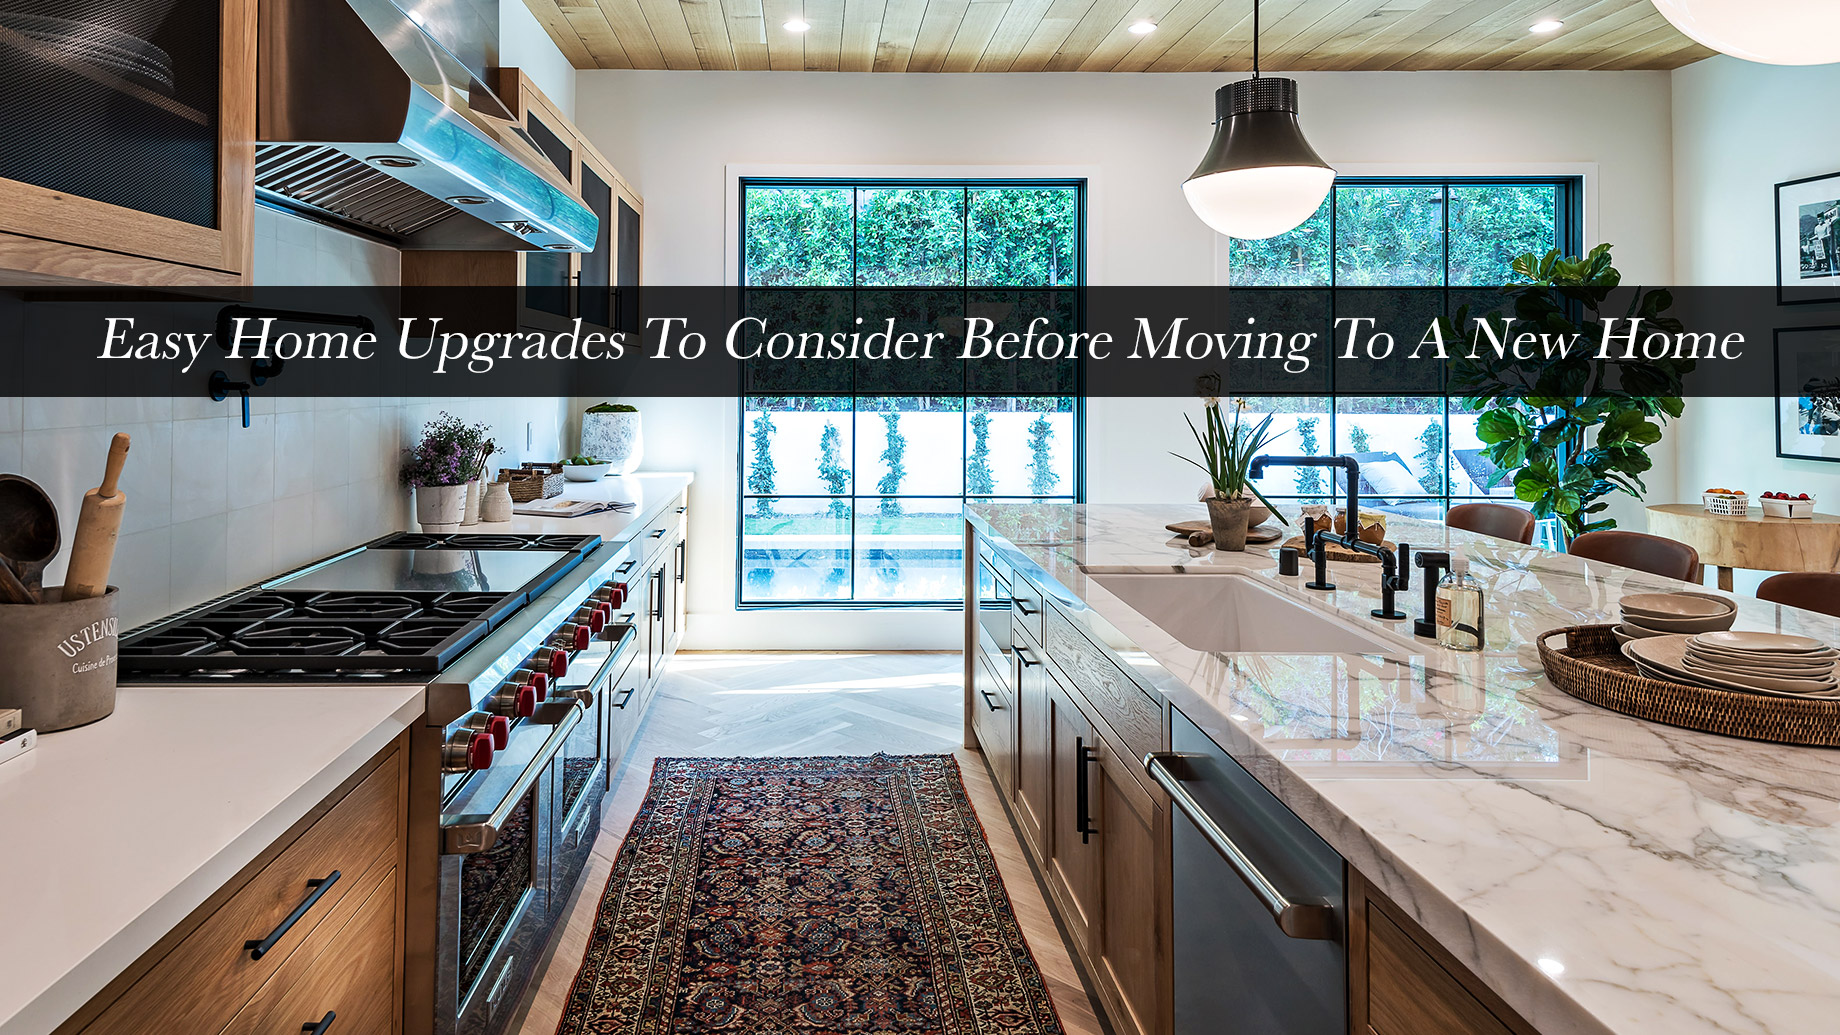 Easy Home Upgrades To Consider Before Moving To A New Home